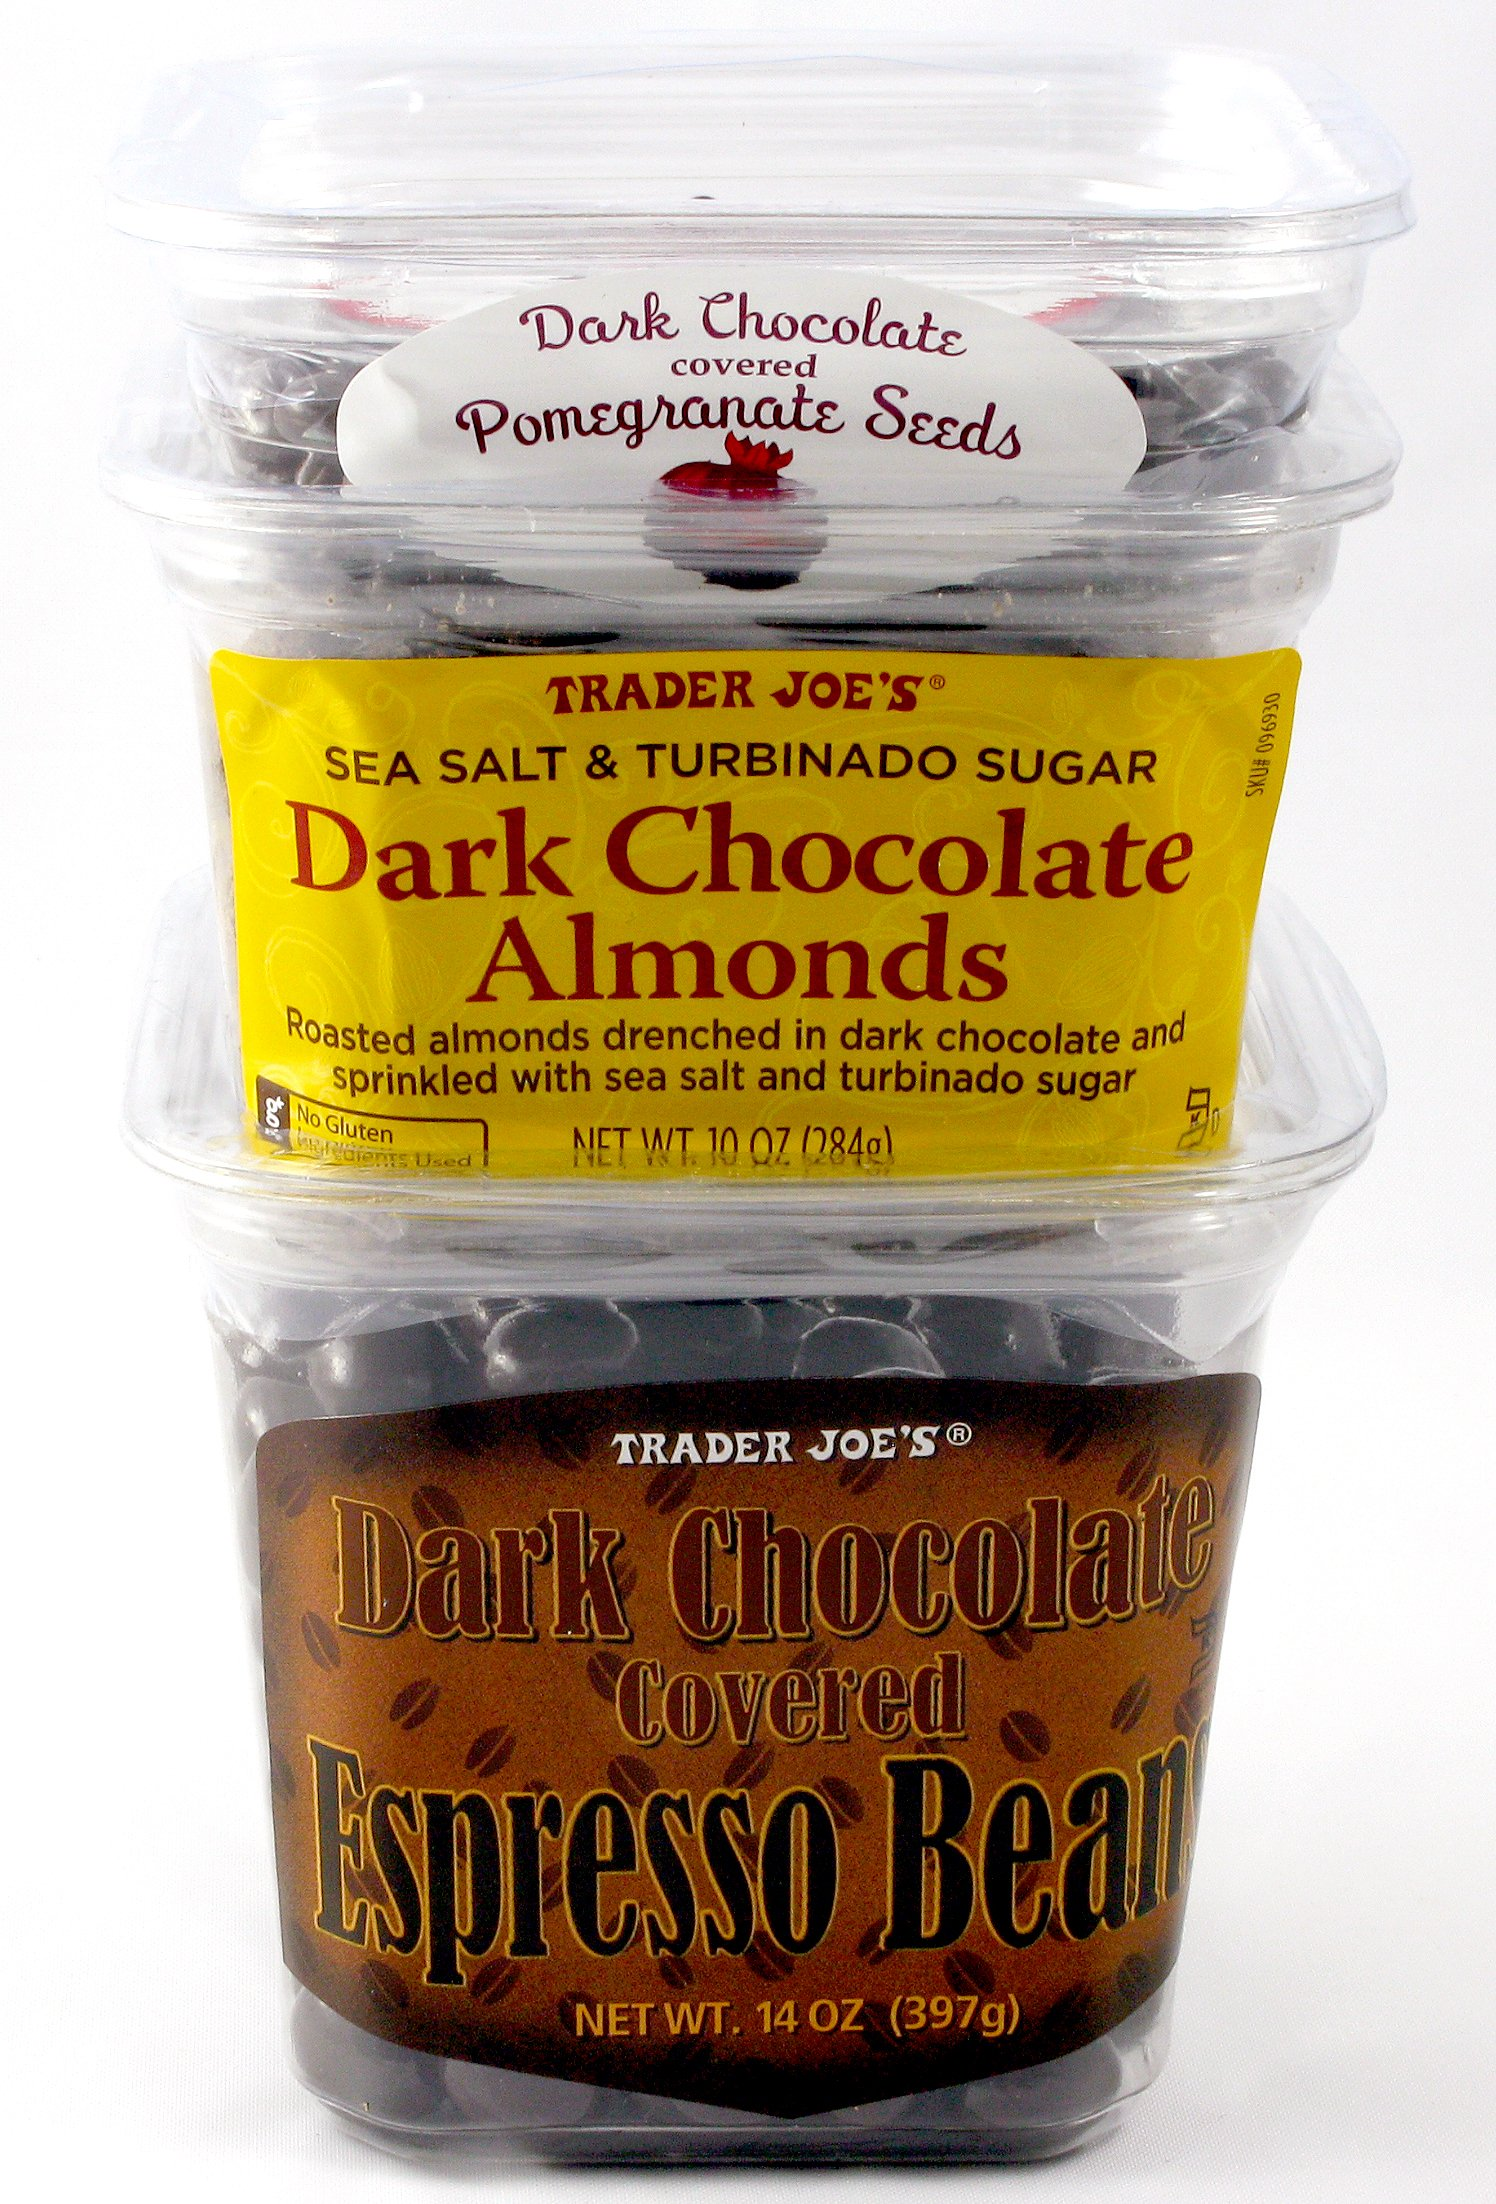 Trader Joe's Dark Chocolate Covered Espresso Beans, Dark Chocolate Covered Pomegranate Seeds, and Sea Salt and Turbinado Sugar Dark Chocolate Almonds - 3 Items Total by Trader Joe's